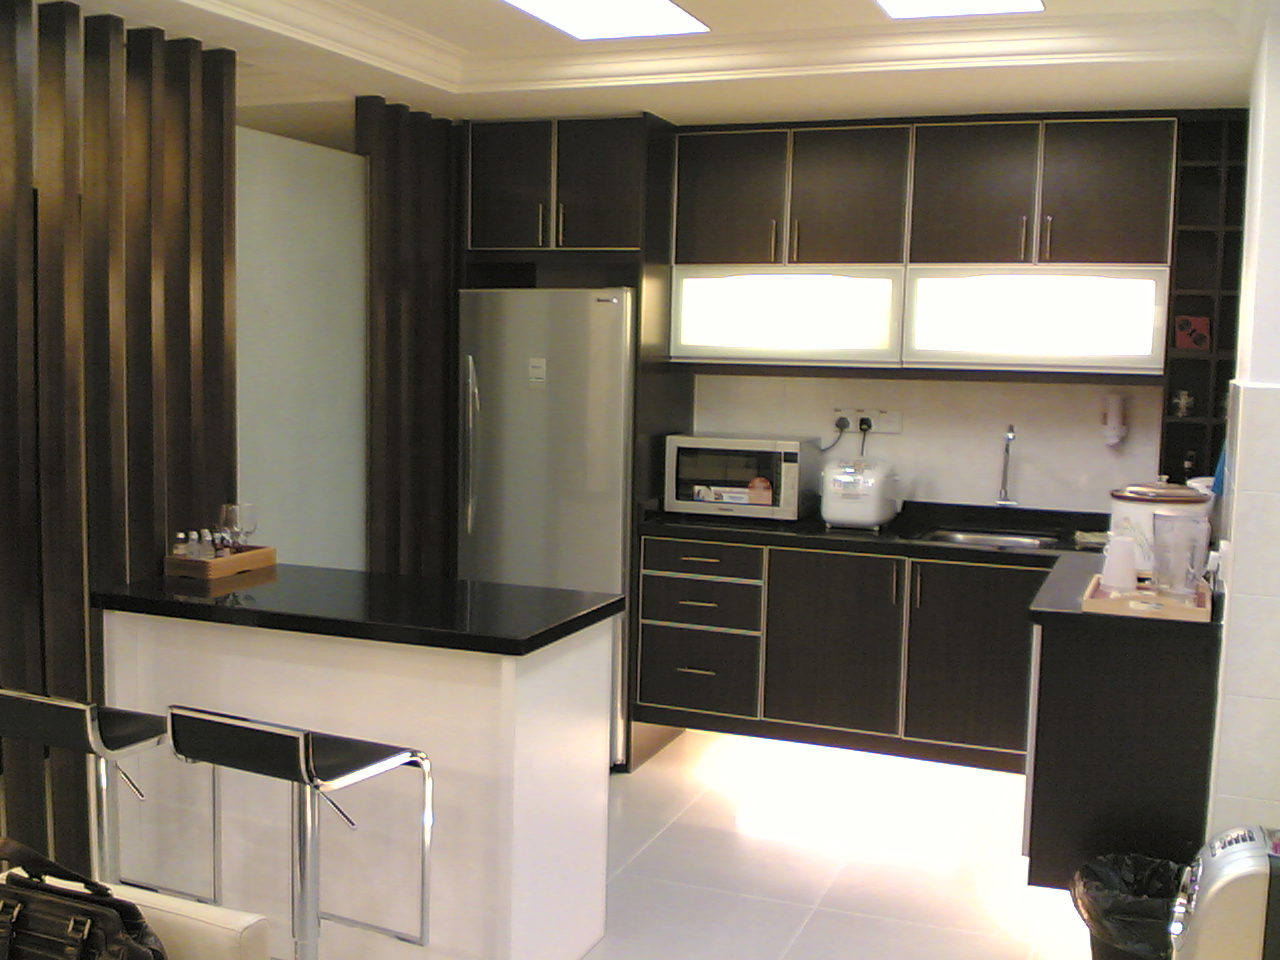 Impressive Modern Small Kitchen Design Ideas 1280 x 960 · 335 kB · jpeg